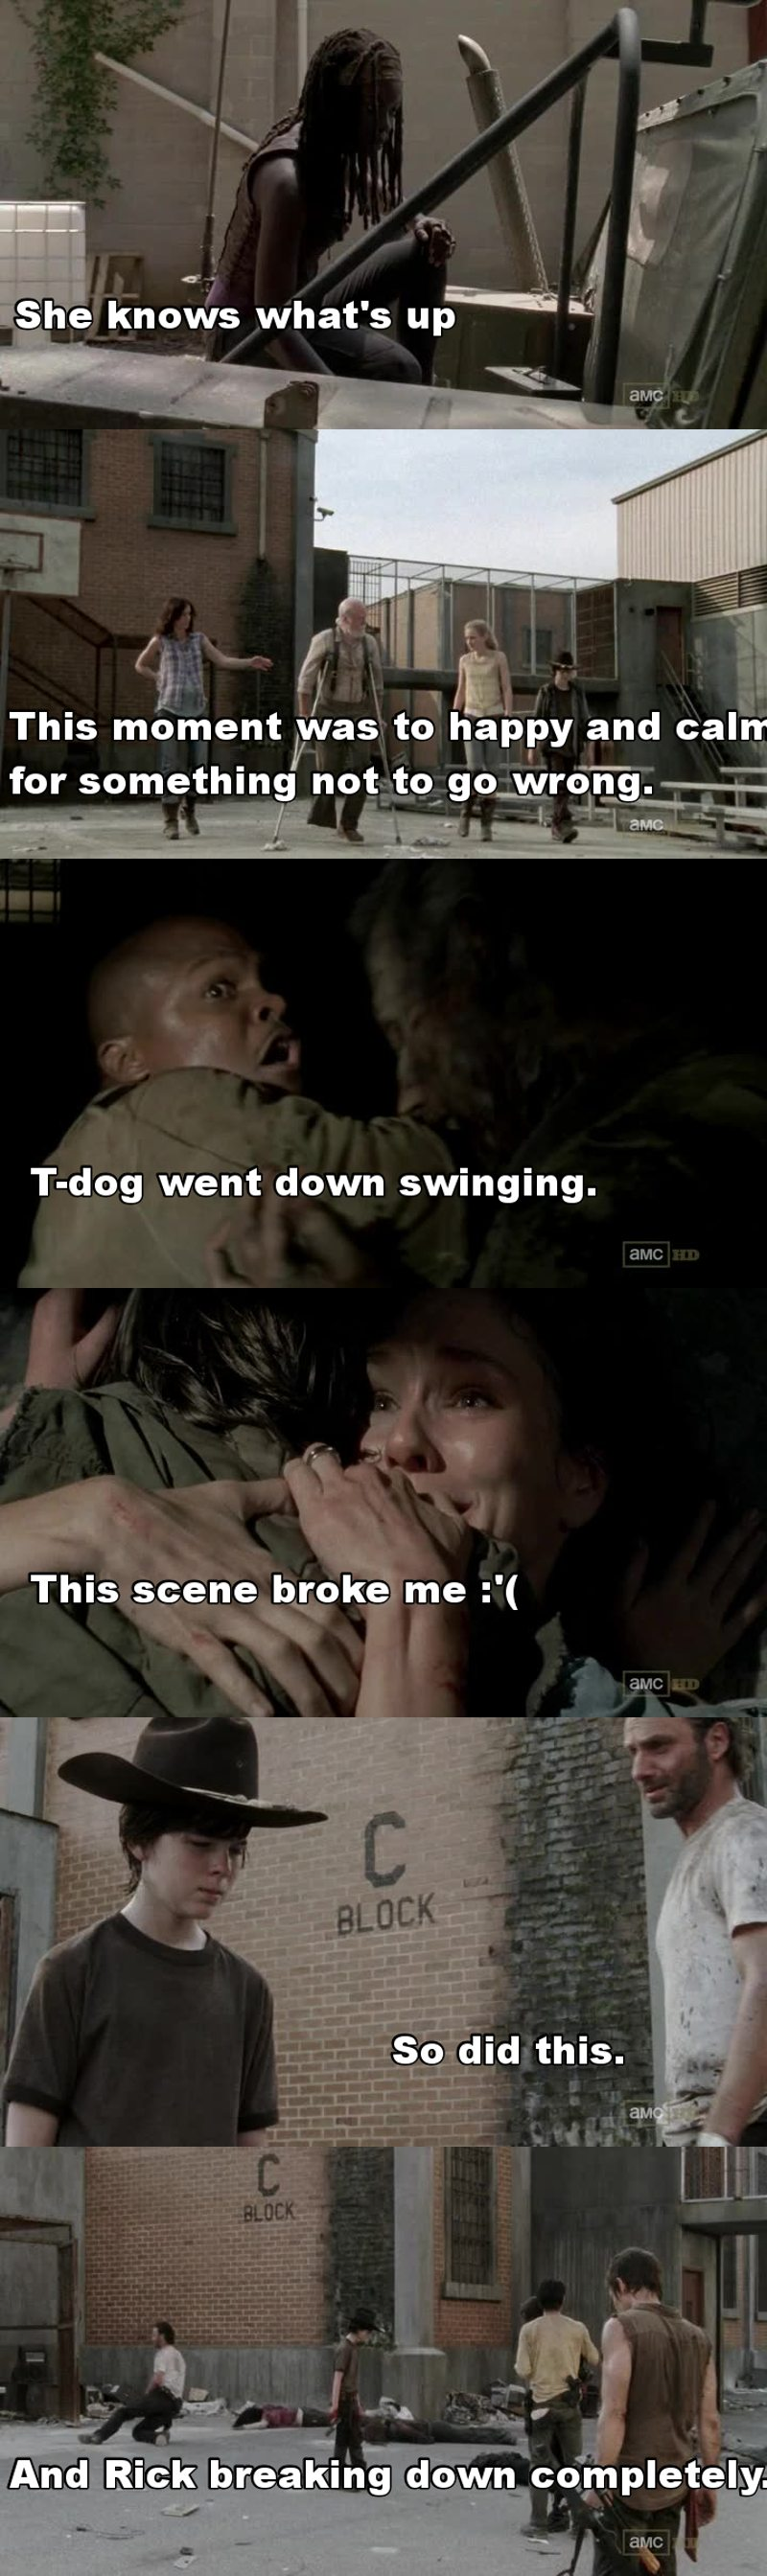 A bit too much happened in this episode.  That asshole that opened the gates and led the walkers in :/  Carl should not have had to go through that, that was horrible.  The pain was real.  R.I.P Lori and T-dog